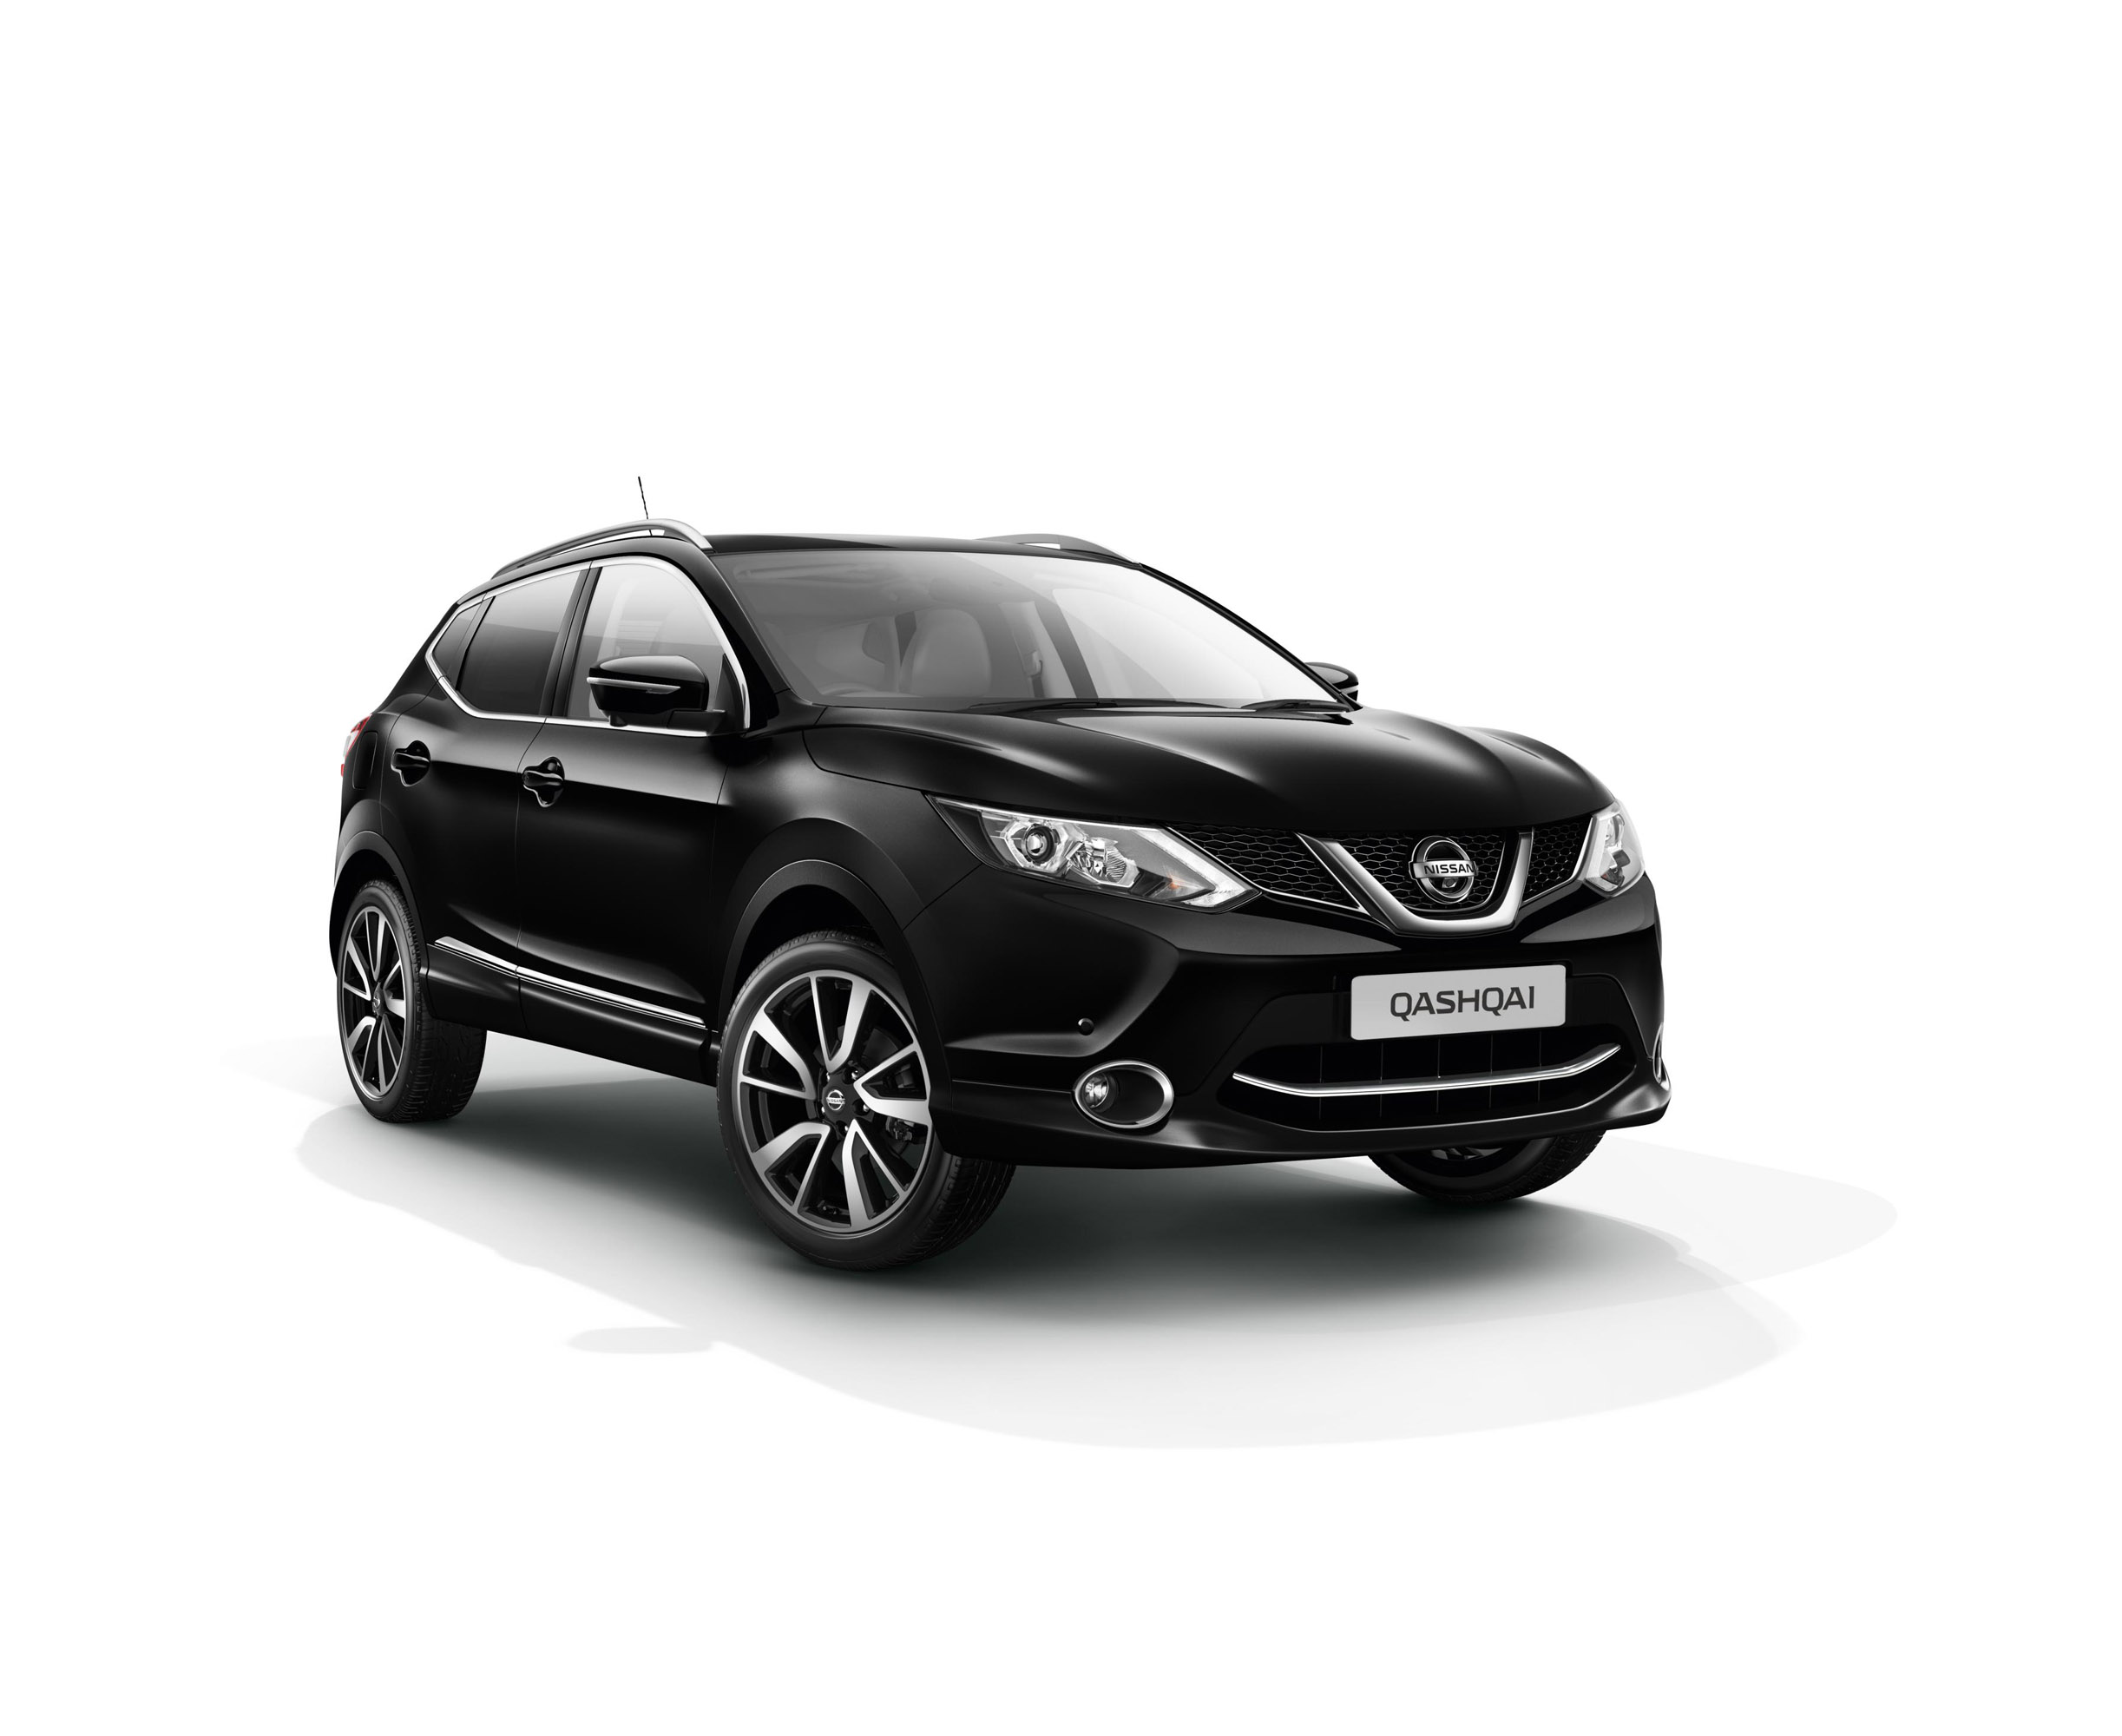 nissan launches 2014 qashqai premier limited edition. Black Bedroom Furniture Sets. Home Design Ideas